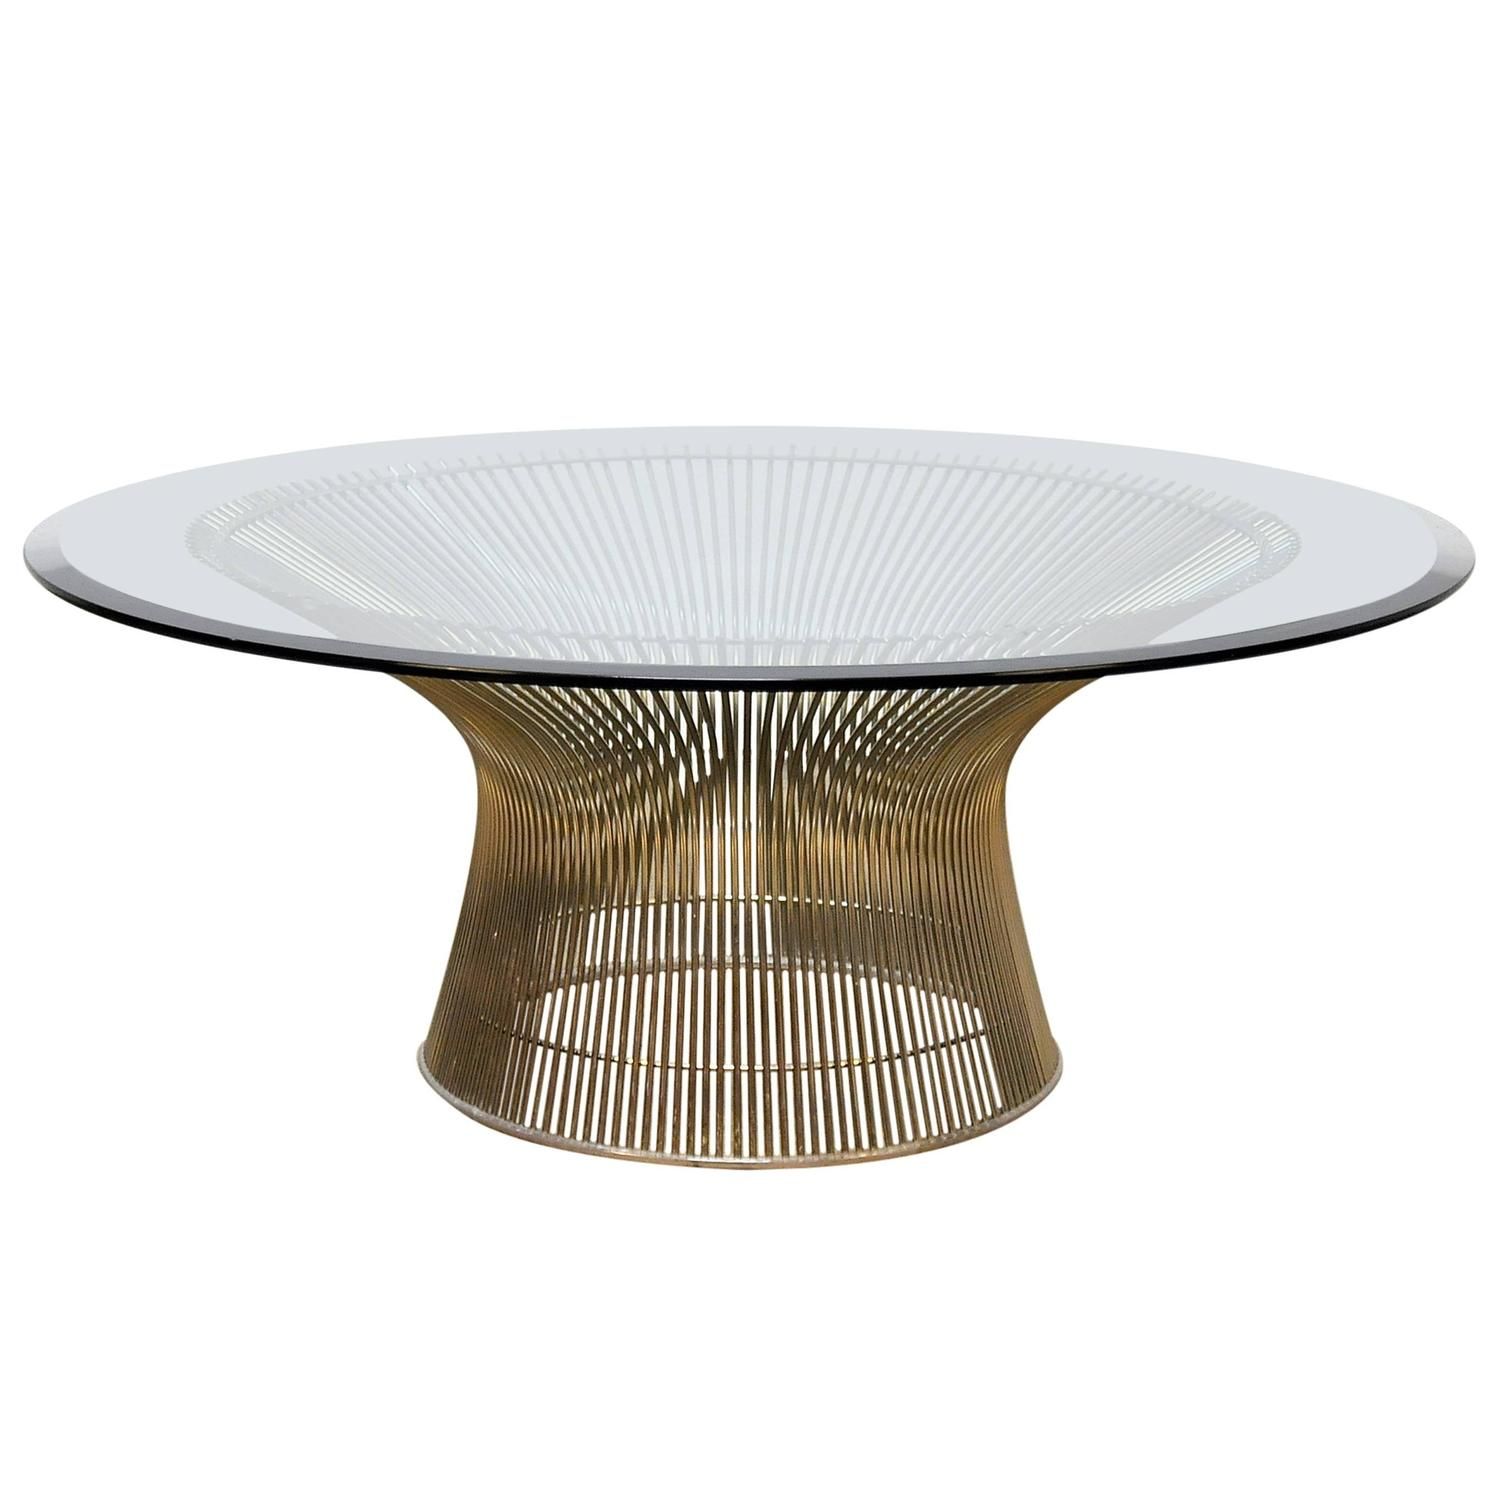 Select modern warren platner for knoll coffee or cocktail for Warren platner coffee table